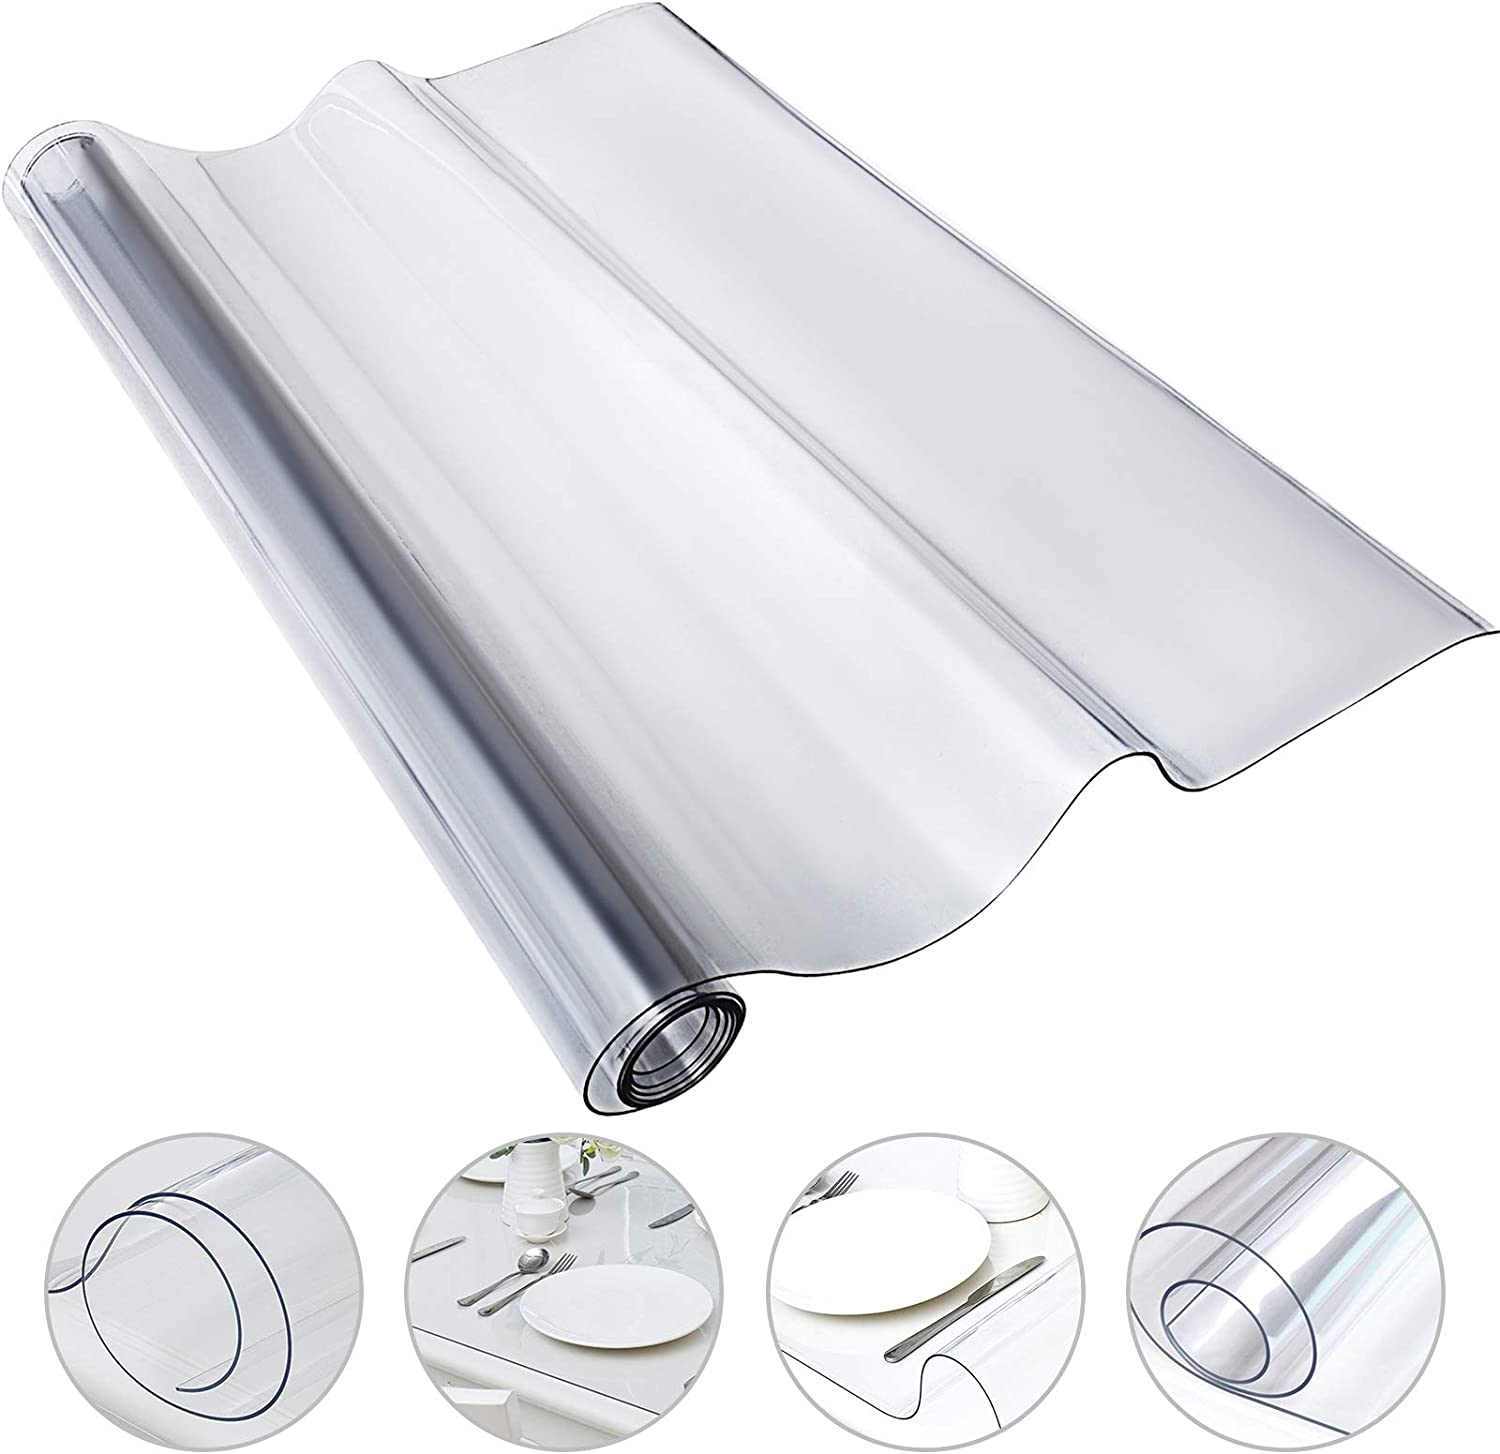 Mophorn 90 x 44 Inch Crystal Clear Table Protector Clear PVC Table Top Protector 1.5mm Thick Table Cover Rectangular Table Pads for Dining Room